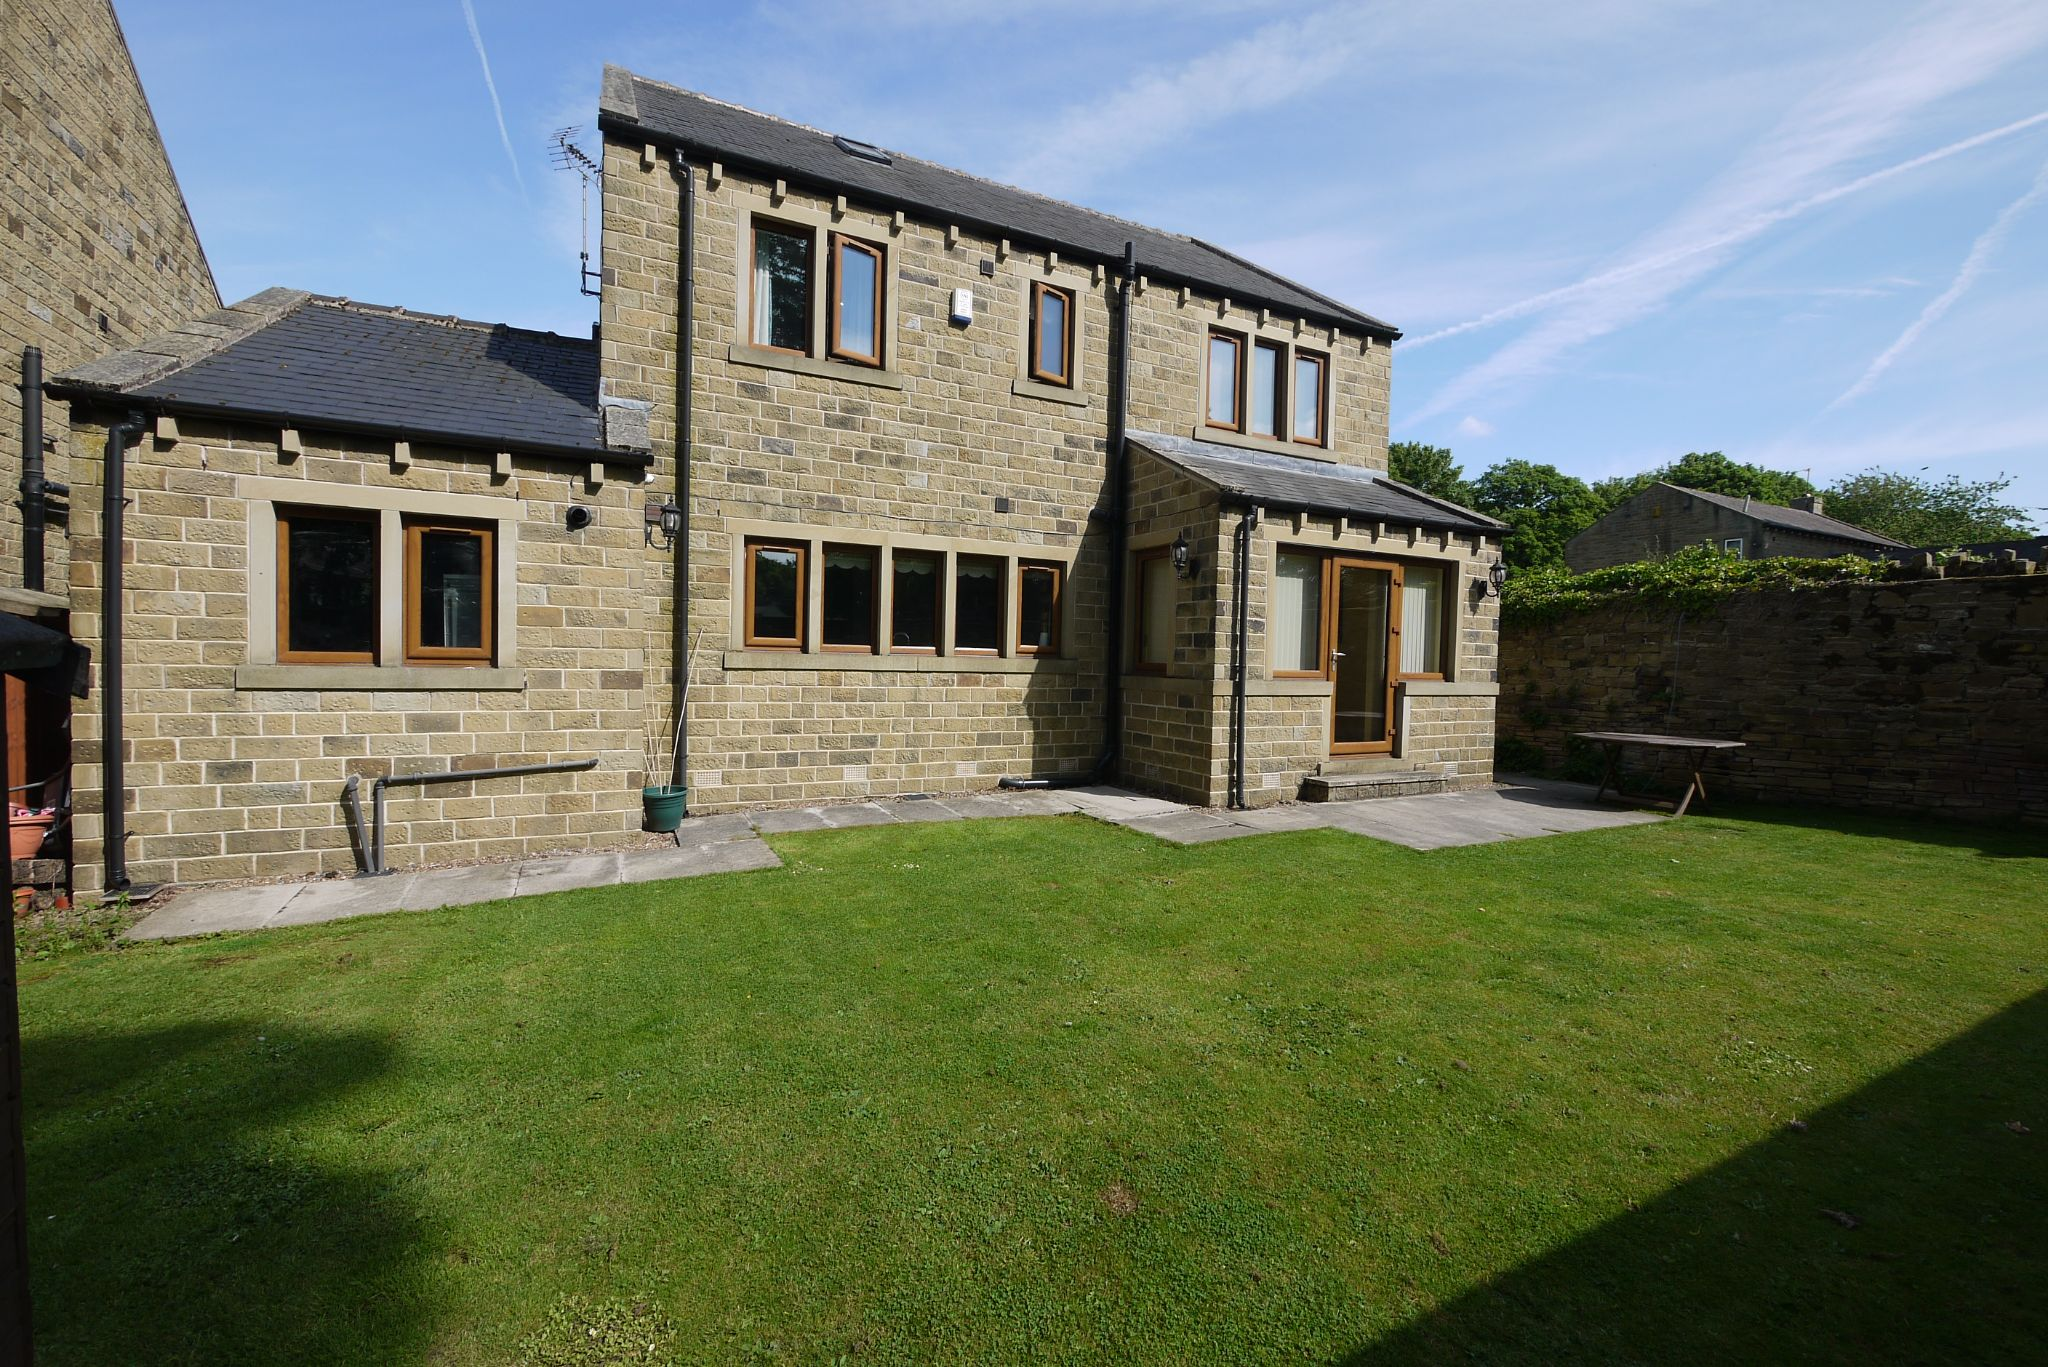 5 bedroom detached house For Sale in Brighouse - Photograph 17.